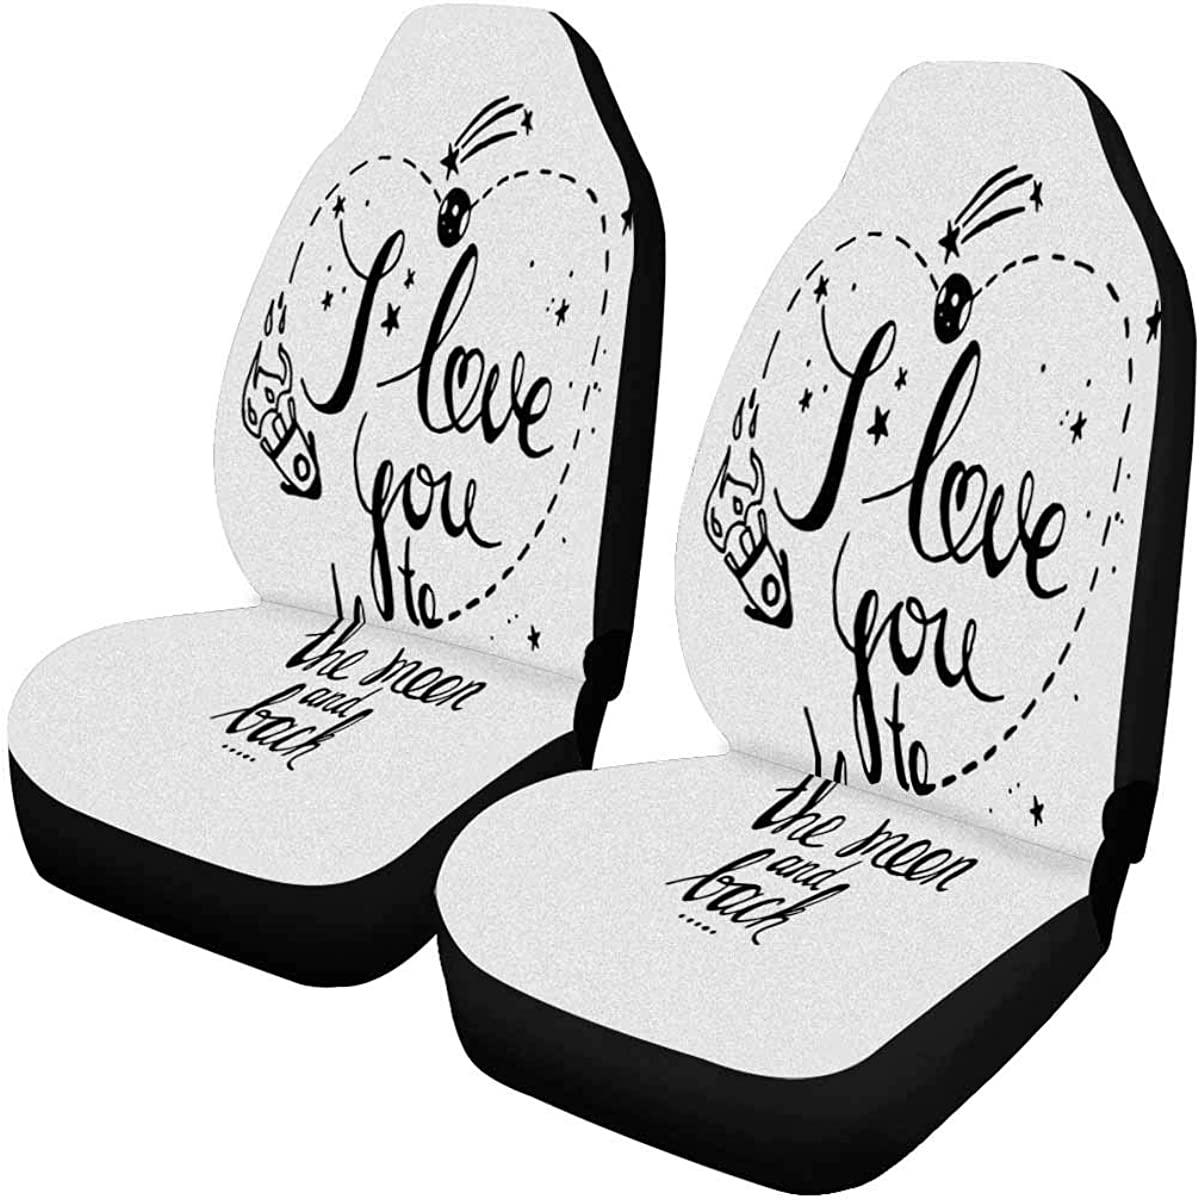 INTERESTPRINT Full Moon Phases Car Seat Cover Front Seats Only Full Set of 2 SUV Truck or Van Bucket Seat Protector Car Seat Cushions for Car